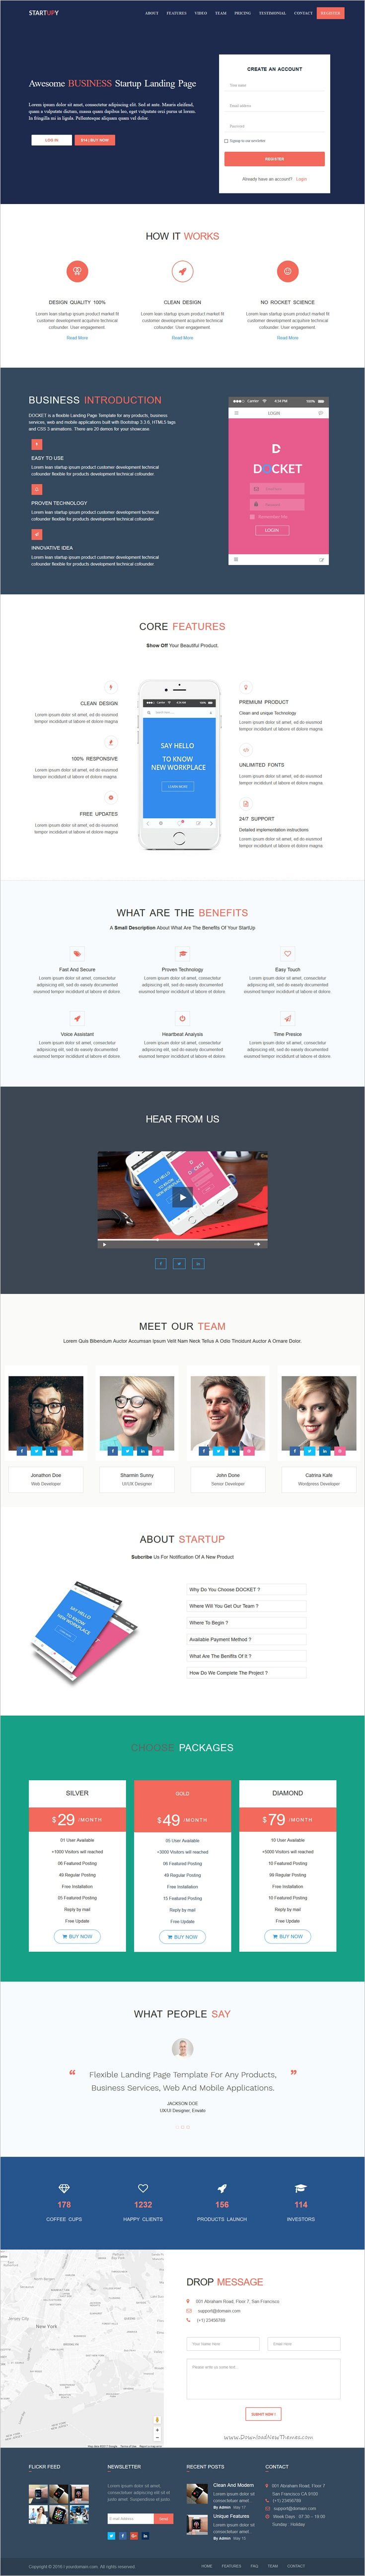 Startupy is clean and modern design responsive 10in1 #HTML5 Bootstrap #template for multipurpose #startups landing page website download now➩ https://themeforest.net/item/startupy-startup-landing-page/19082786?ref=Datasata